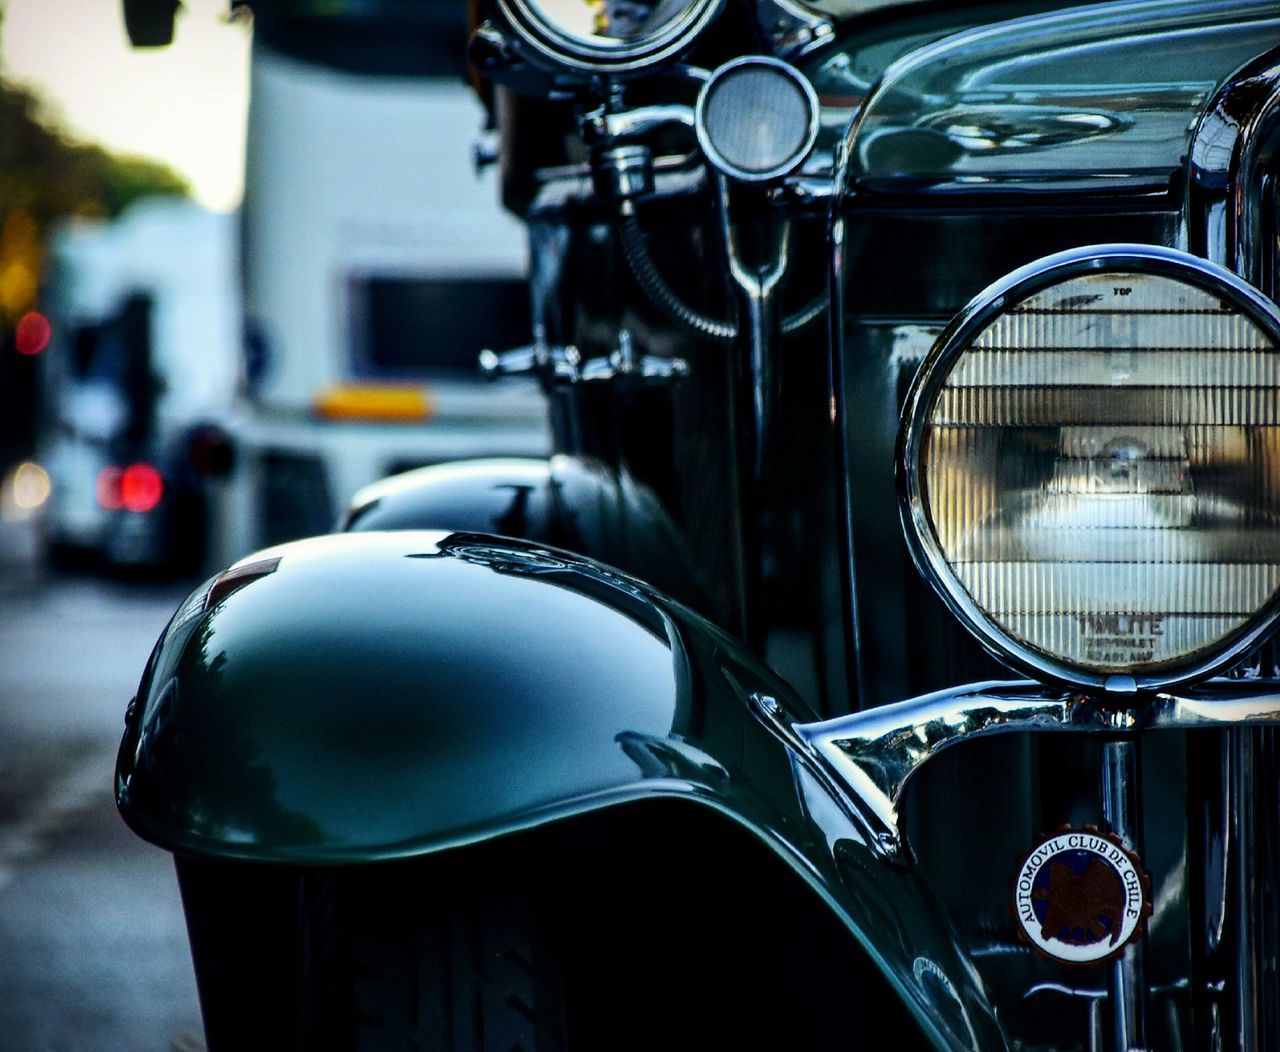 transportation, land vehicle, mode of transport, close-up, focus on foreground, car, no people, motorcycle, day, old-fashioned, outdoors